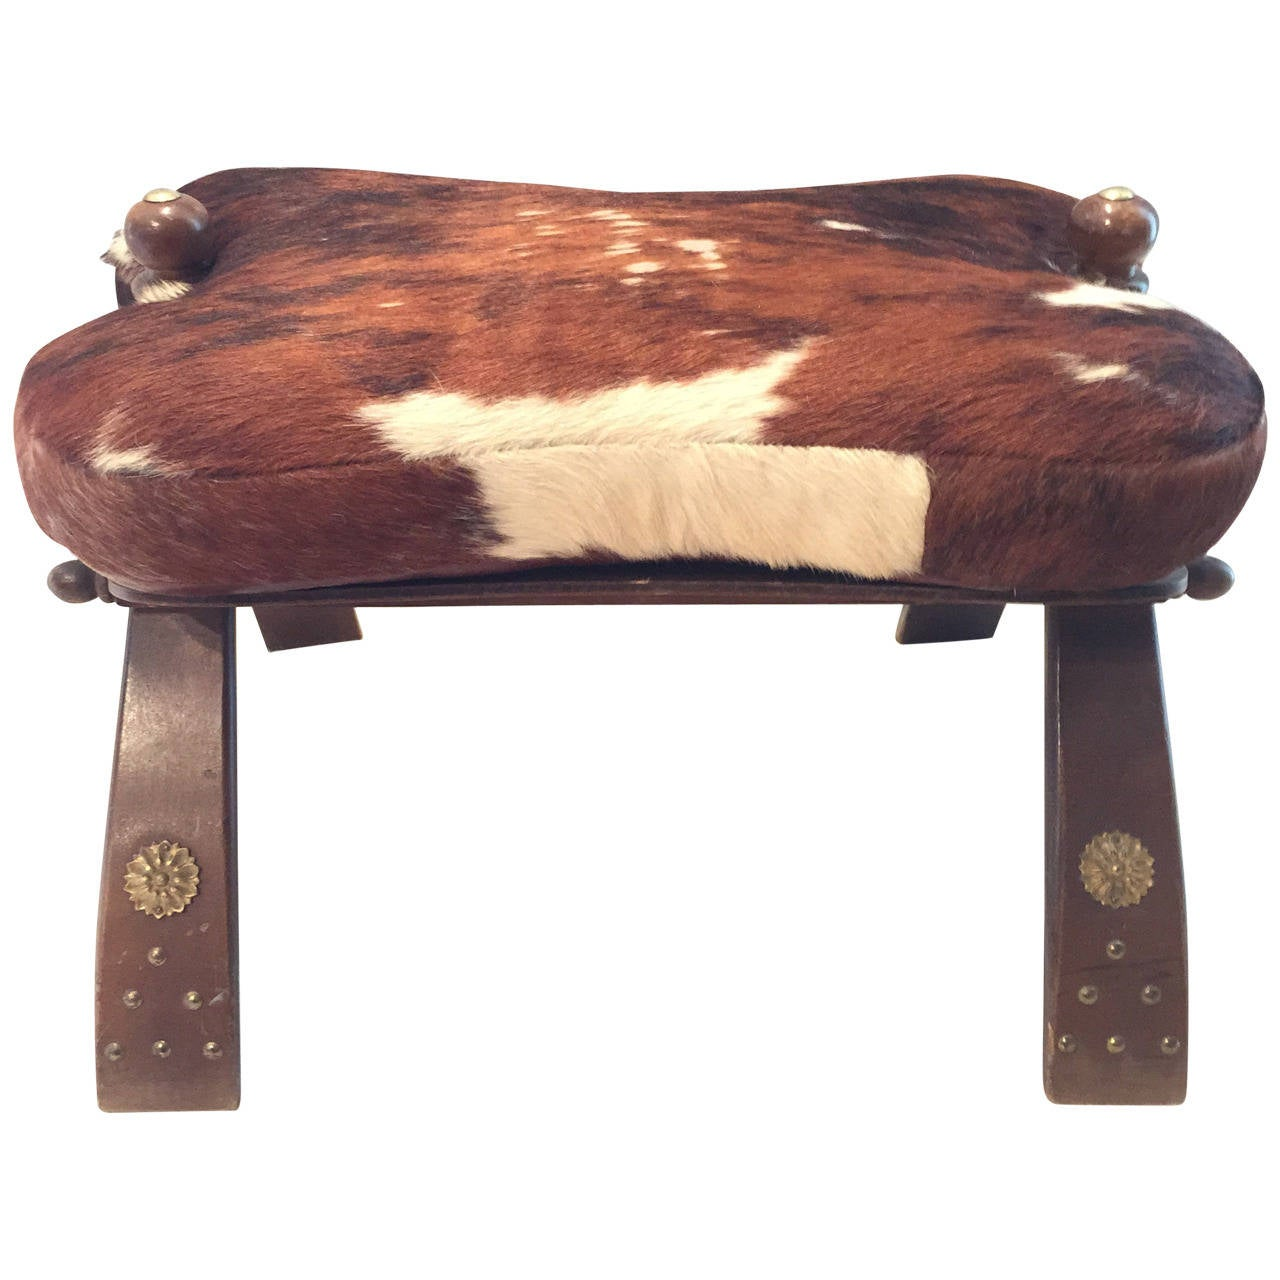 hair on hide chair mats camel saddle seat with leather at 1stdibs